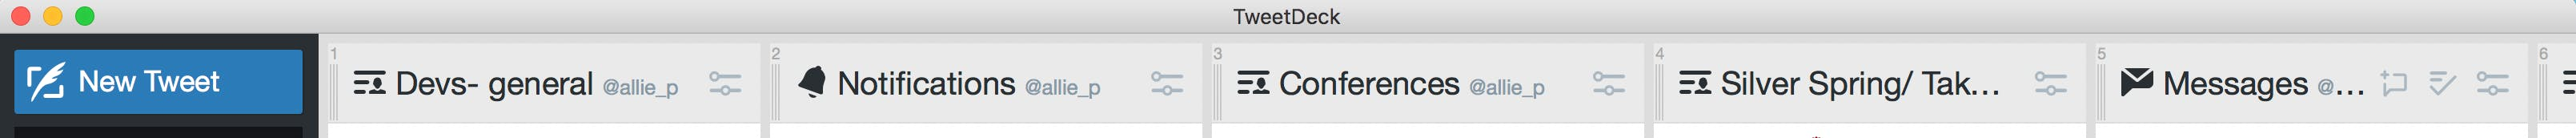 Collective Idea - Tweetdeck 1.png